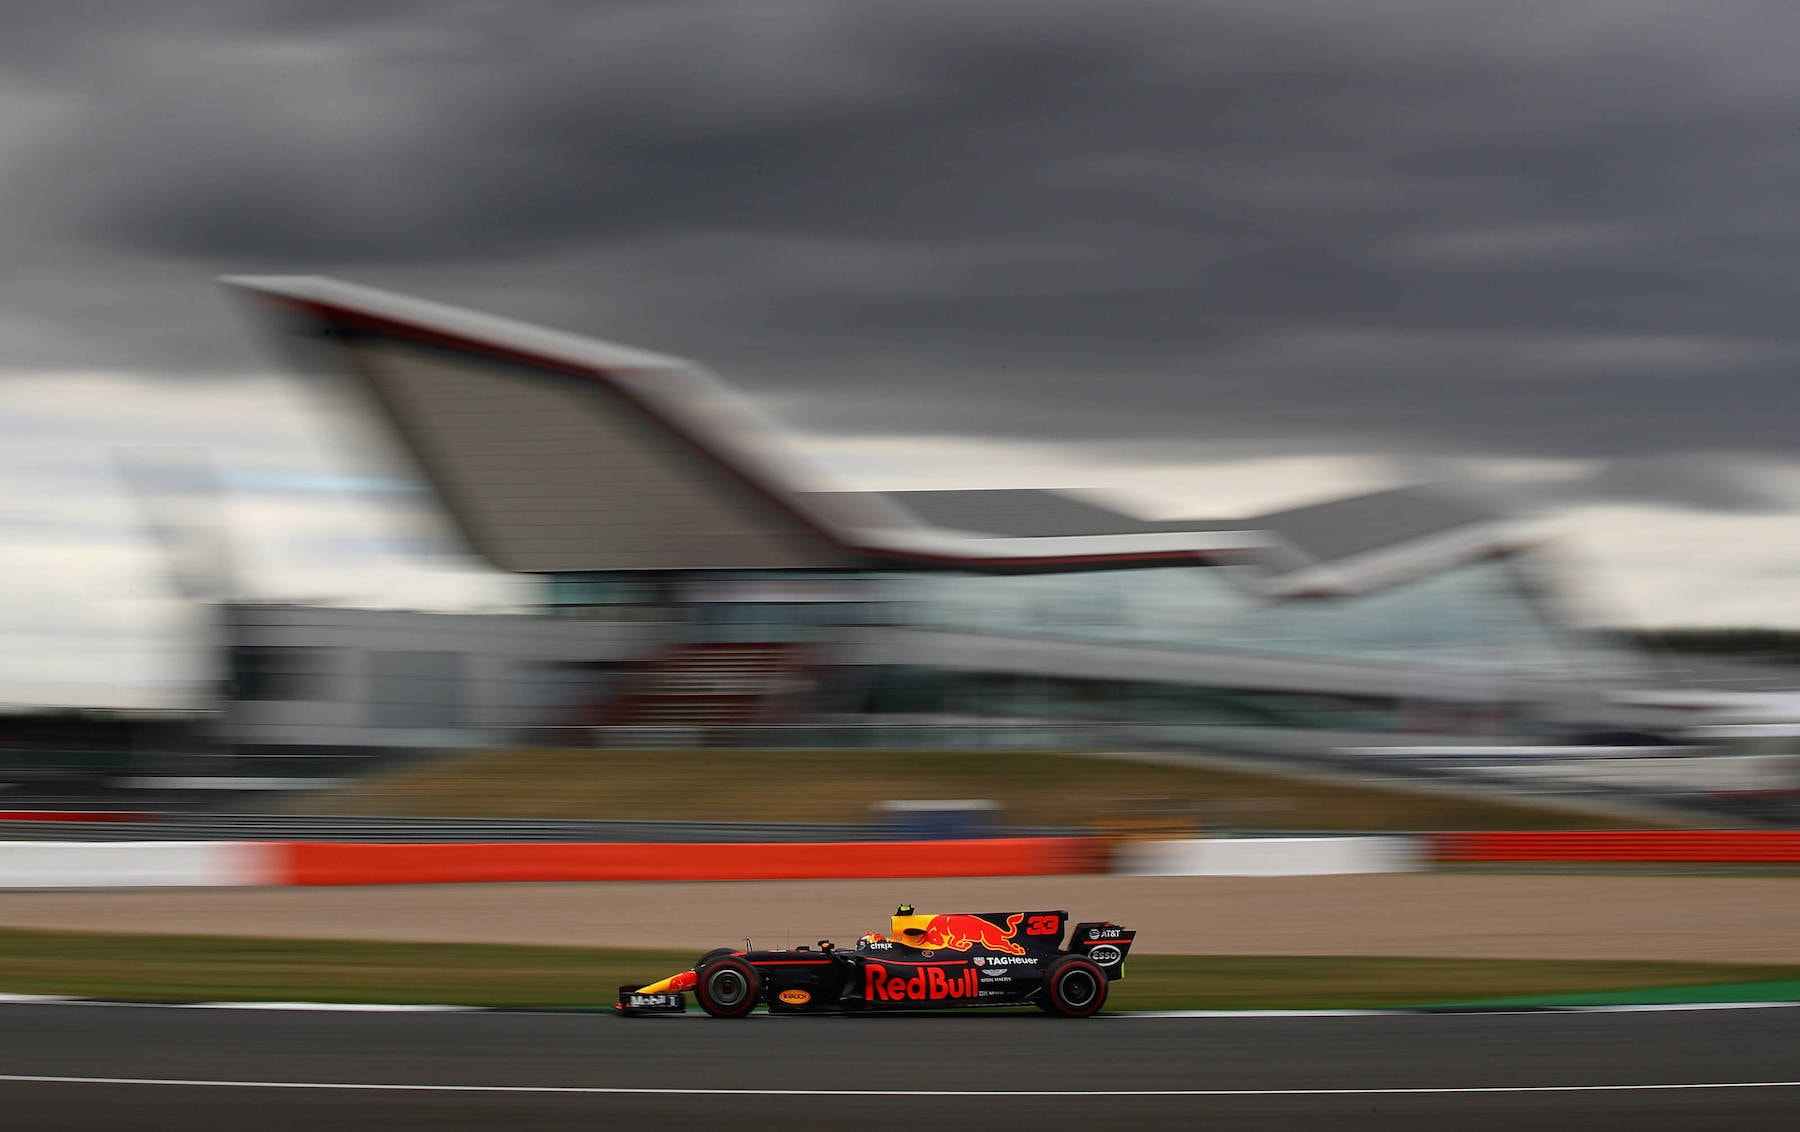 2017 Max Verstappen | Red Bull RB13 | 2017 British GP FP1 2 copy.jpg